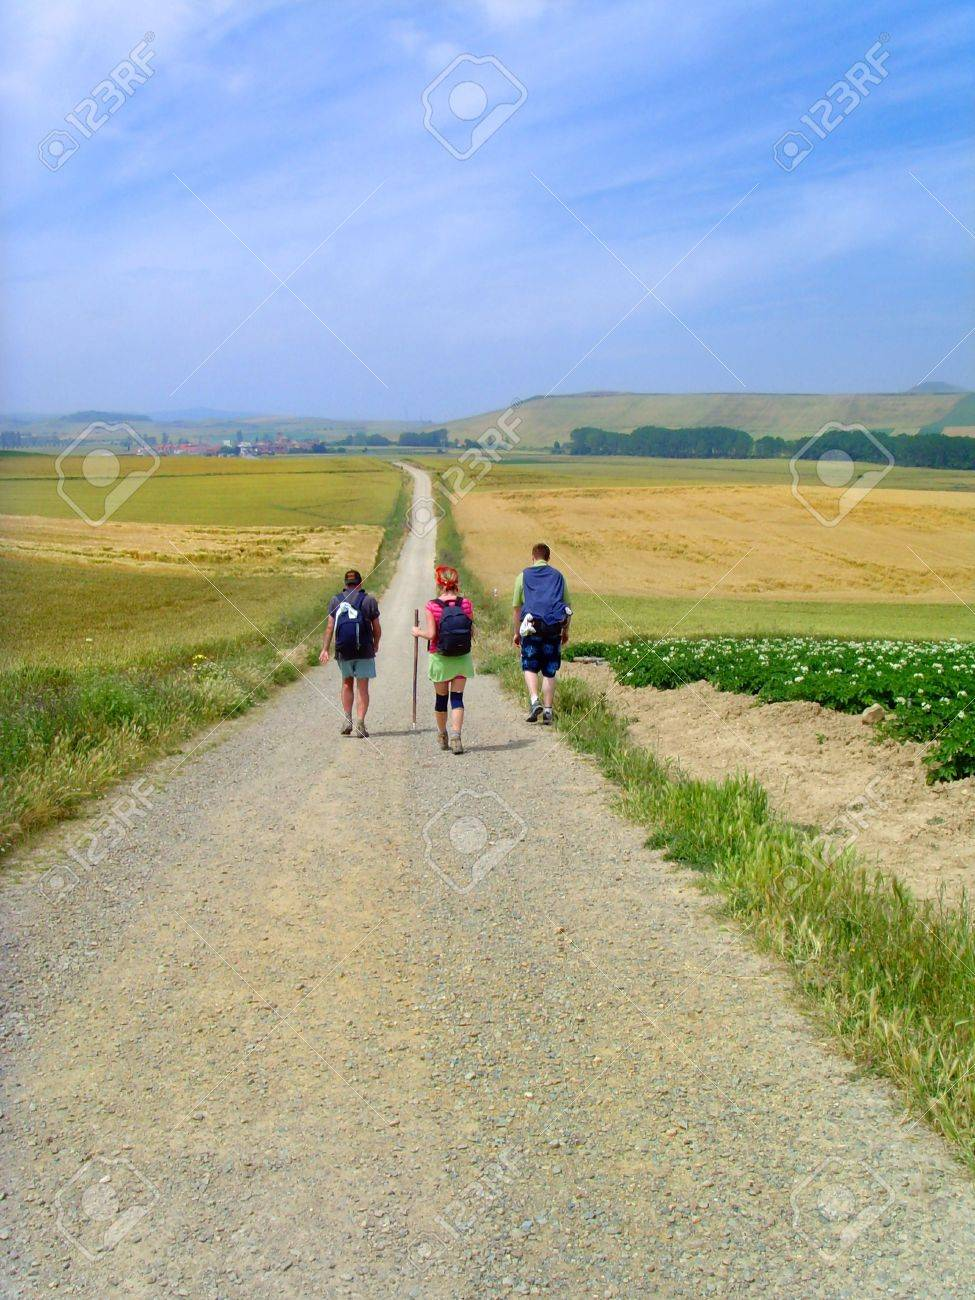 Image result for people walking on road